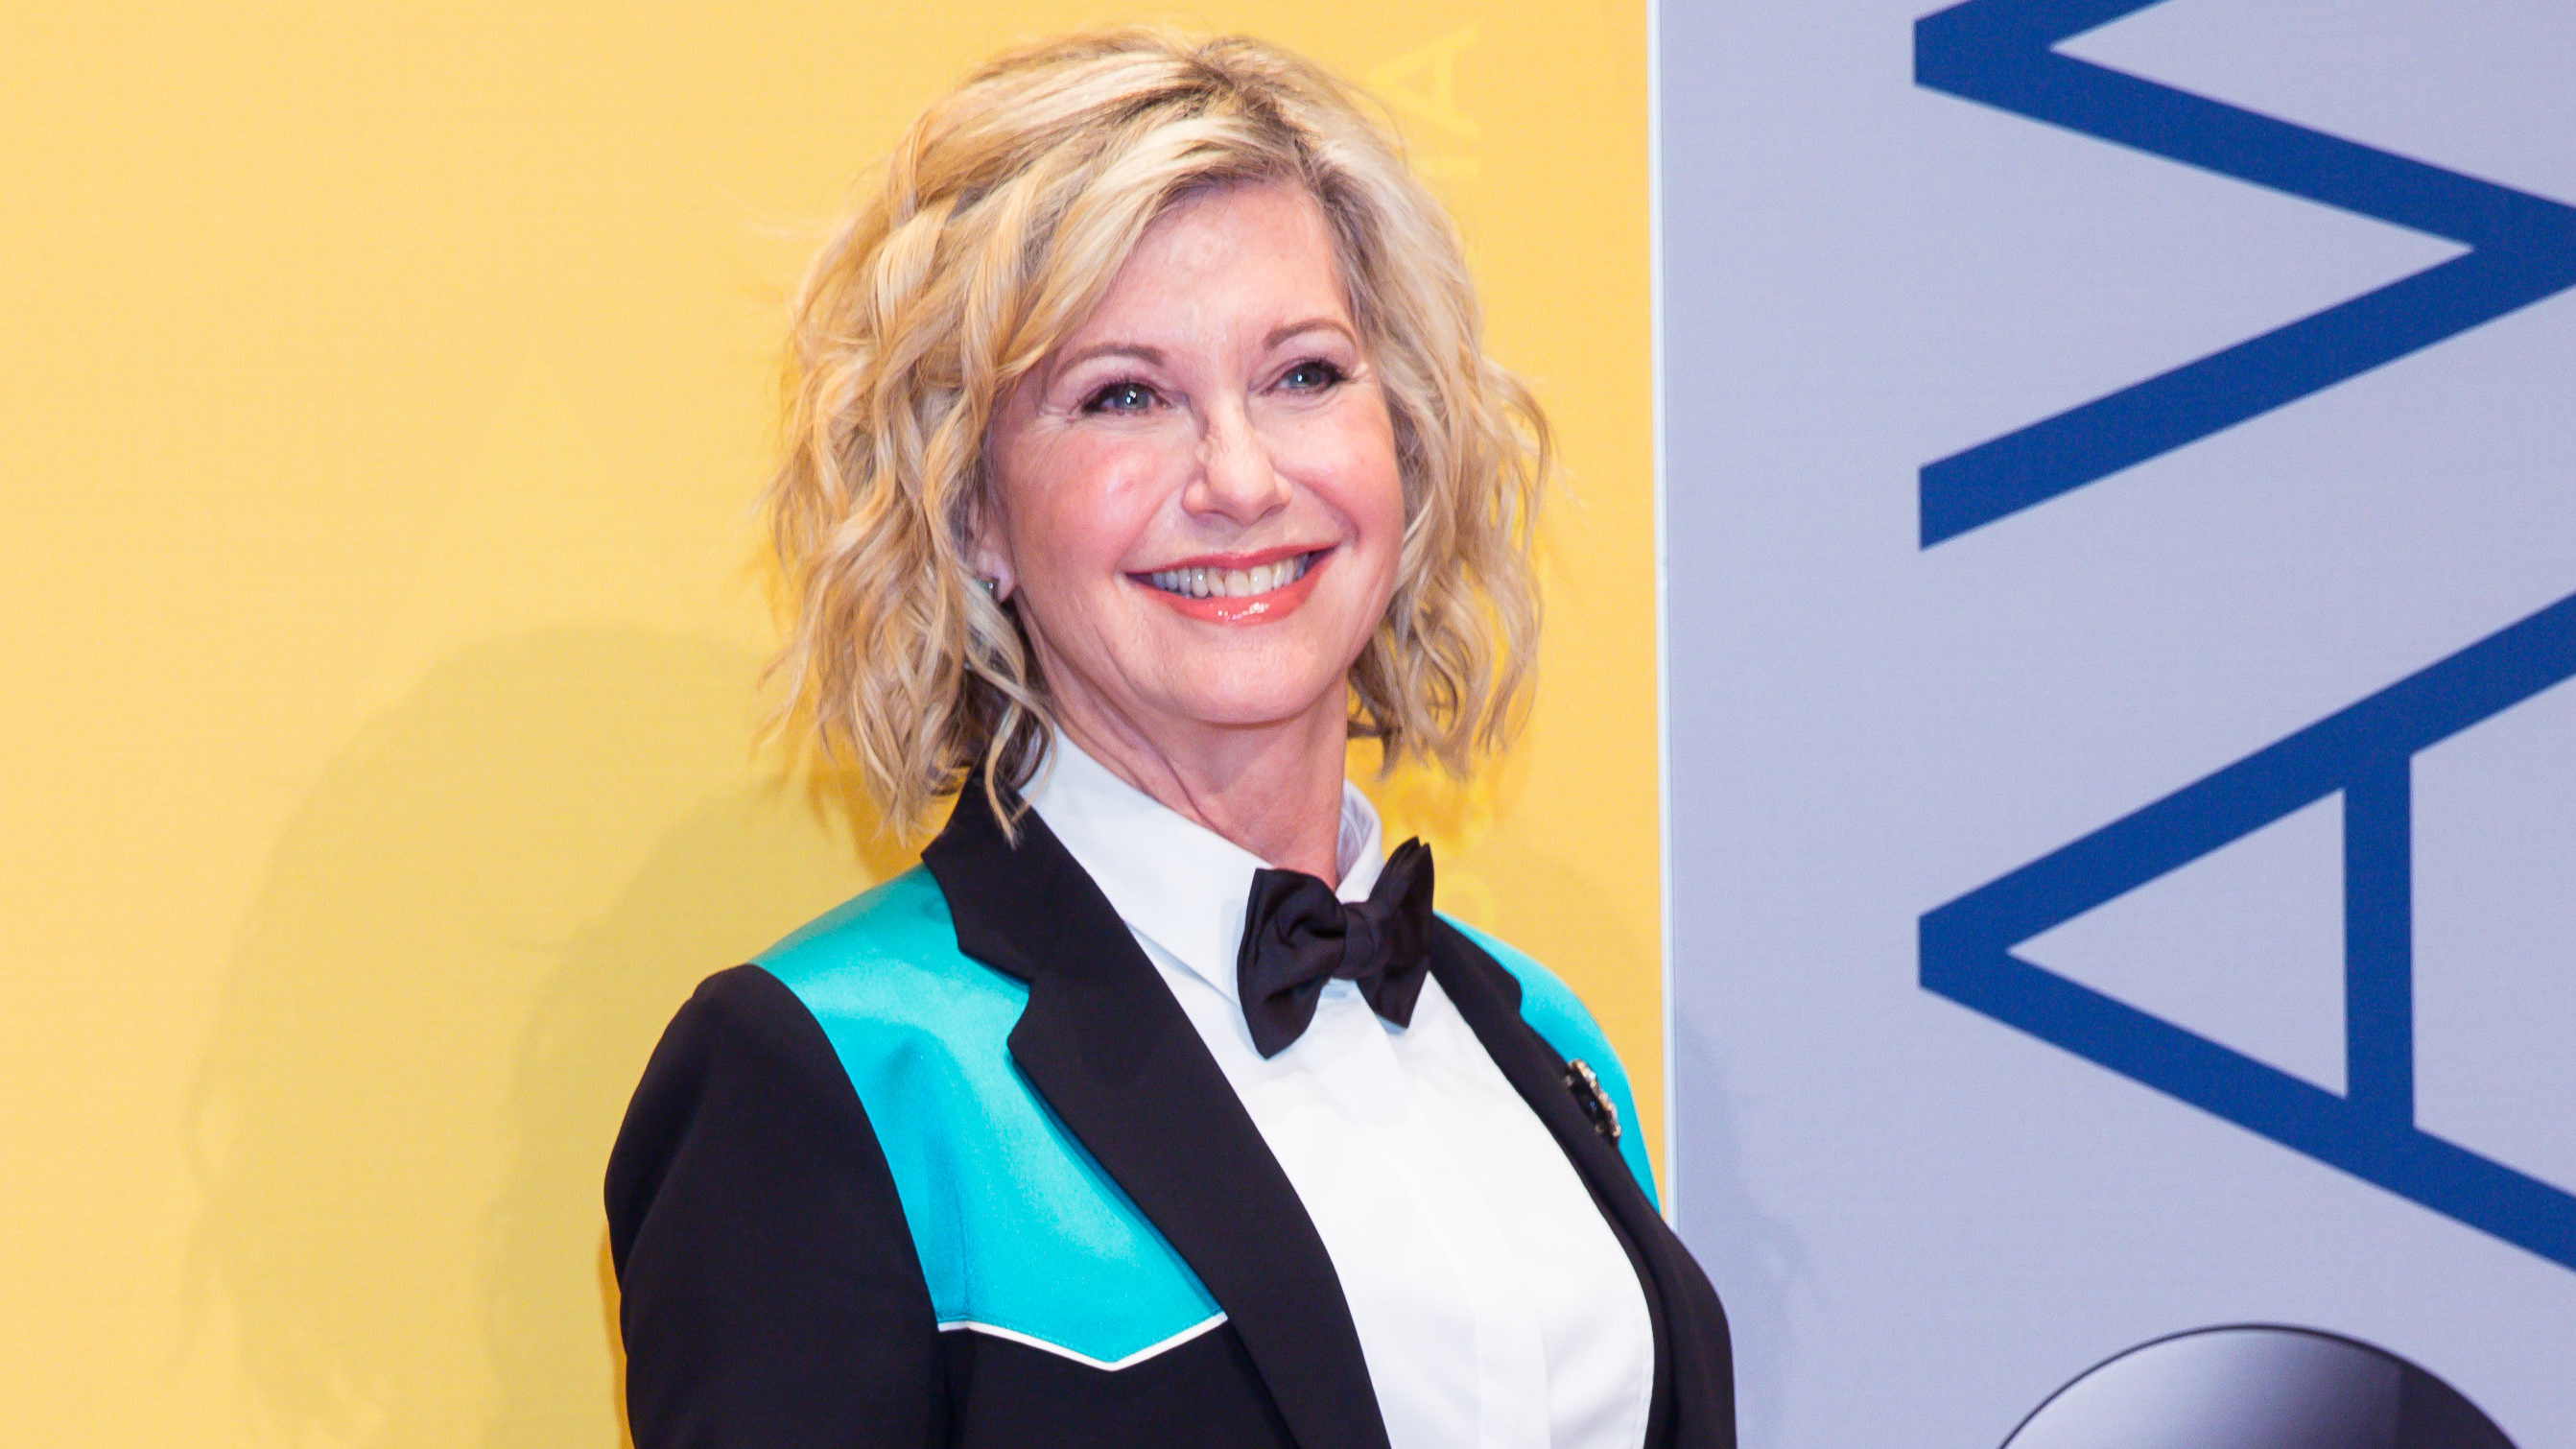 Olivia Newton-John's Manager Describes Reports She's 'Dying' As 'Laughable'